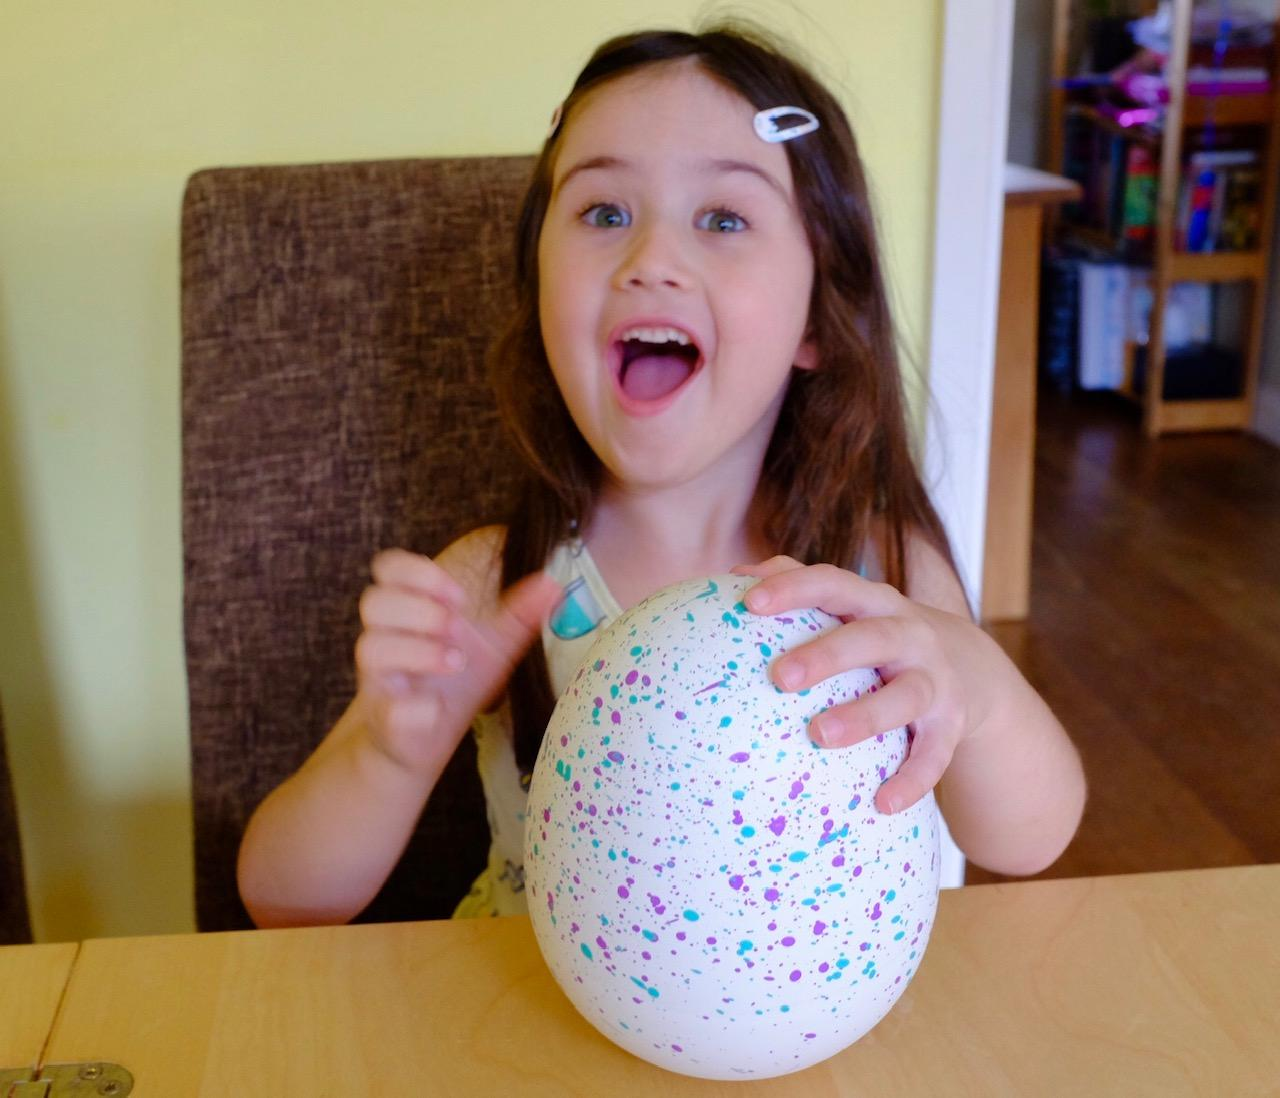 Excited girl tapping Hatchimals HatchiBabies unhatched egg